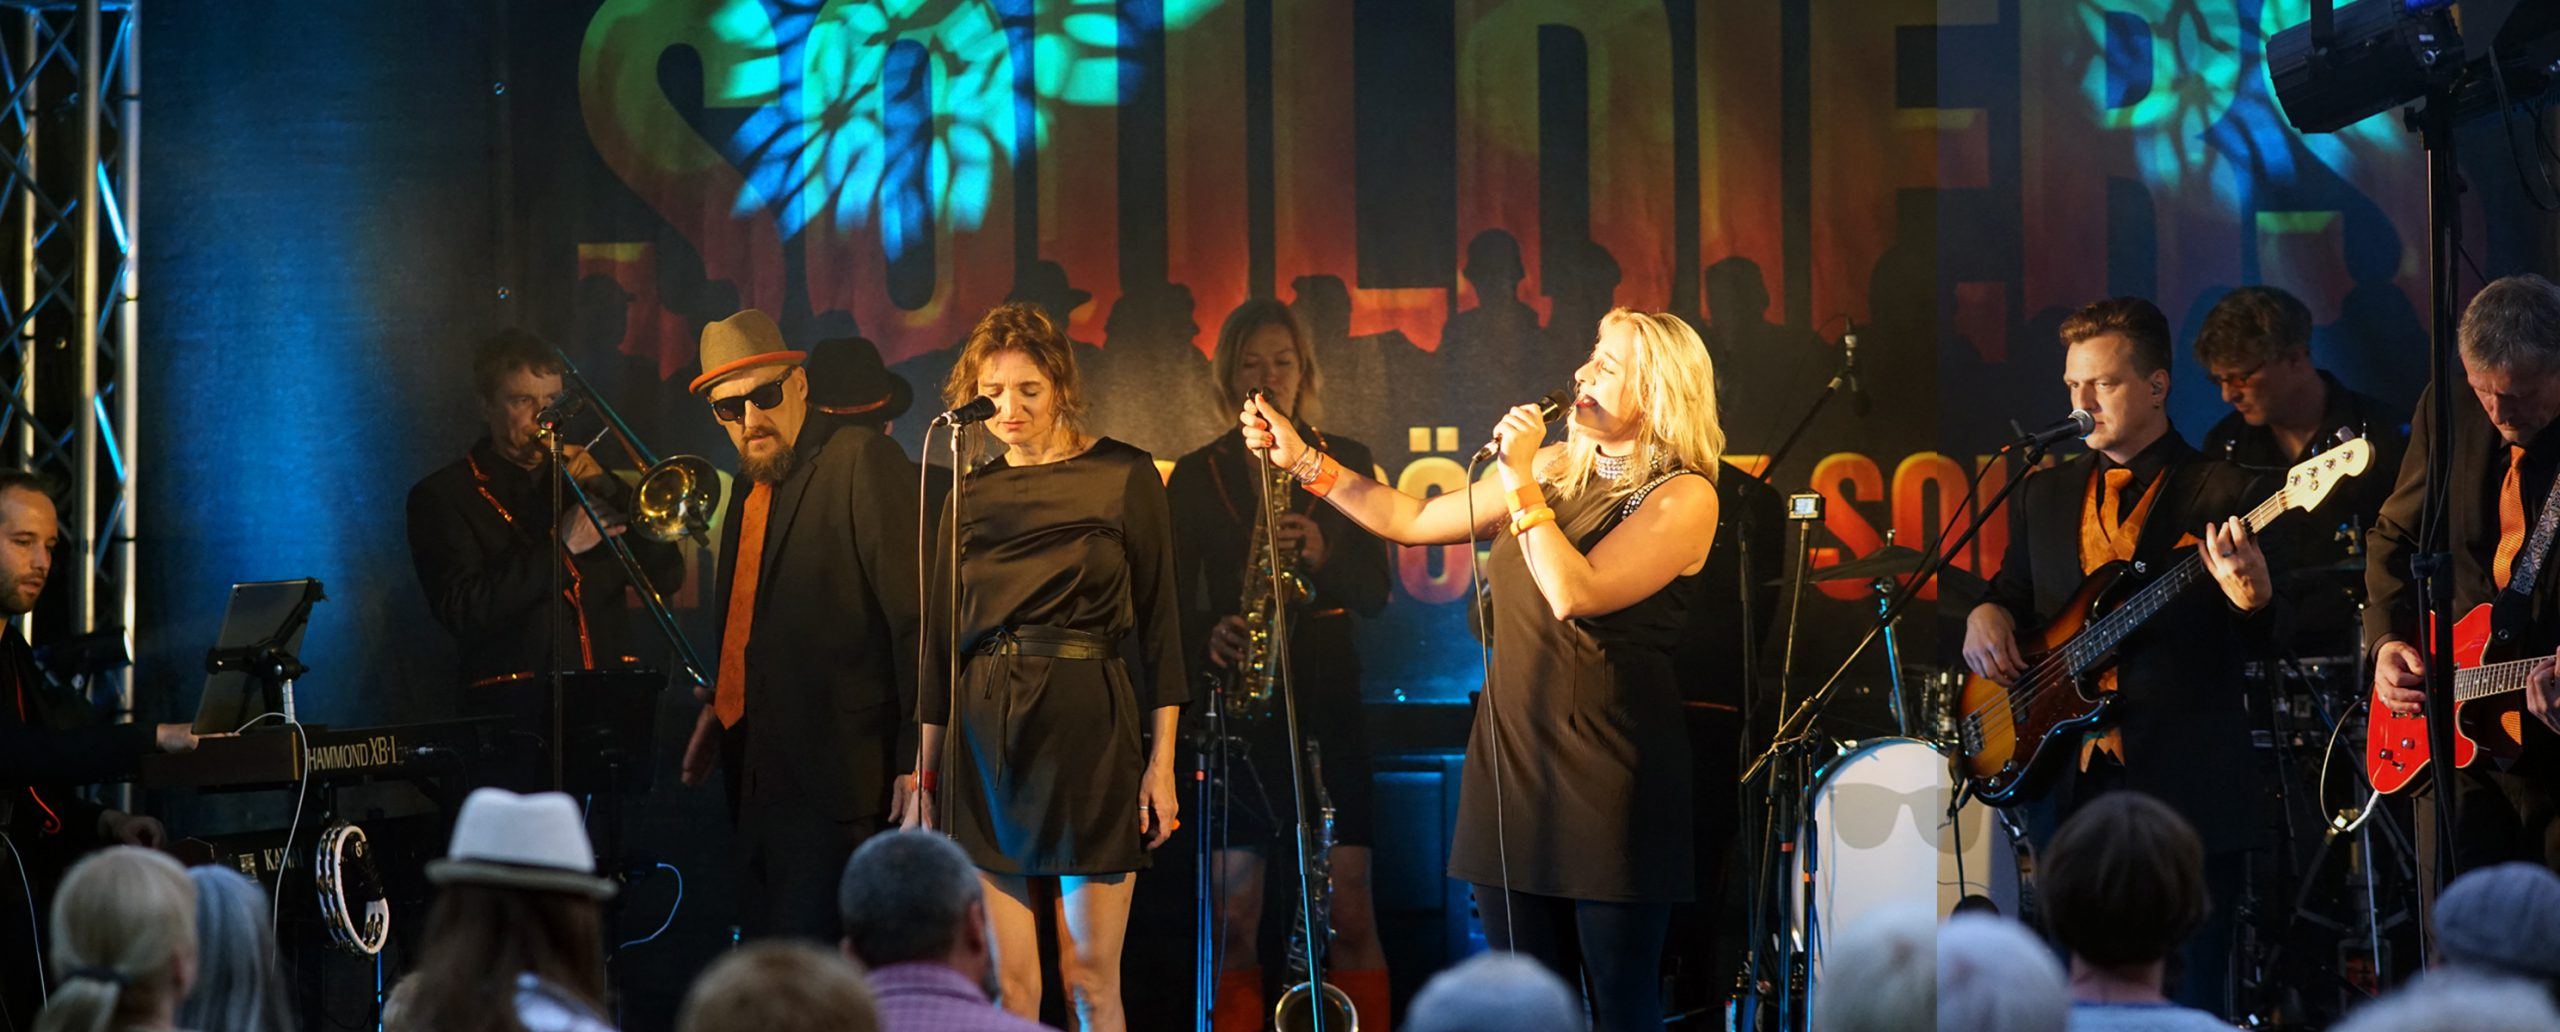 2019 The Souldiers at Greifswald